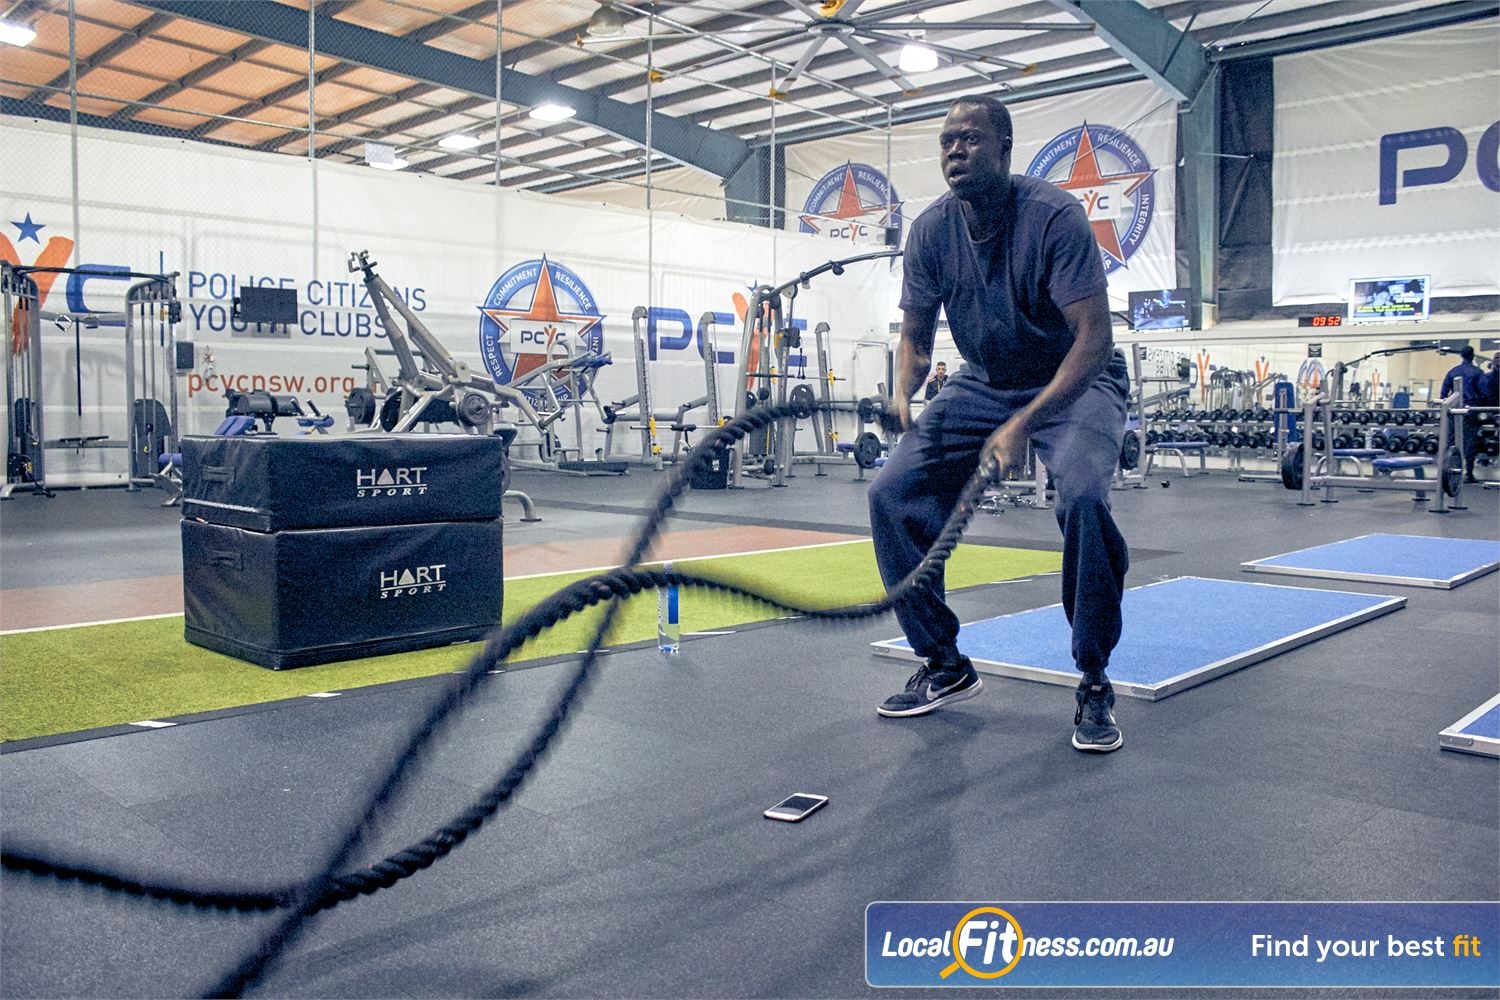 PCYC Auburn Lidcombe Challenge your fitness with functional training and battle ropes.